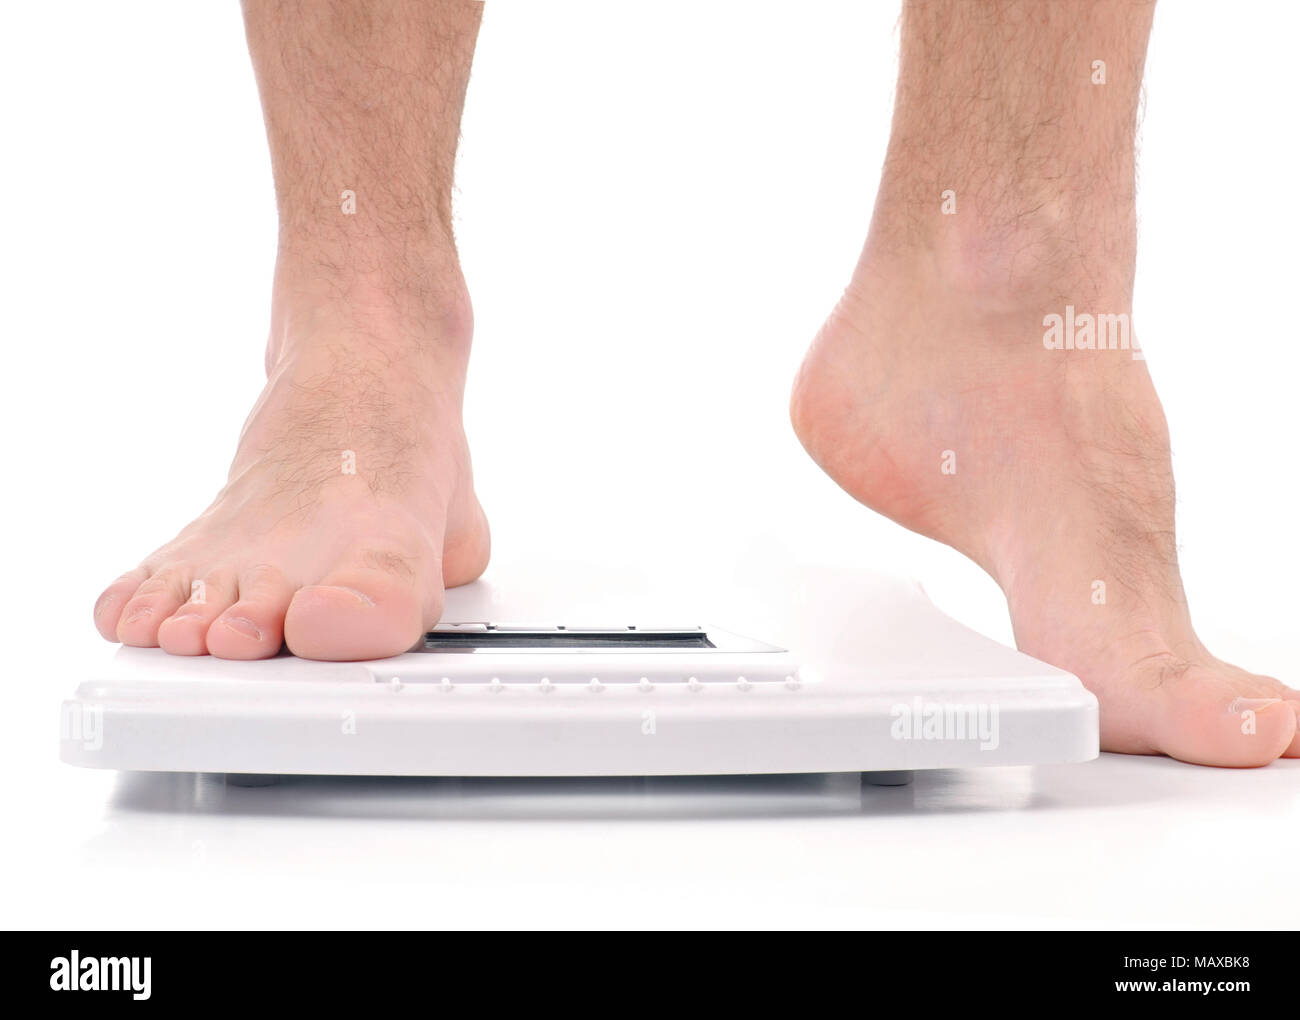 Diet concept. Man standing on weight scale - Stock Image